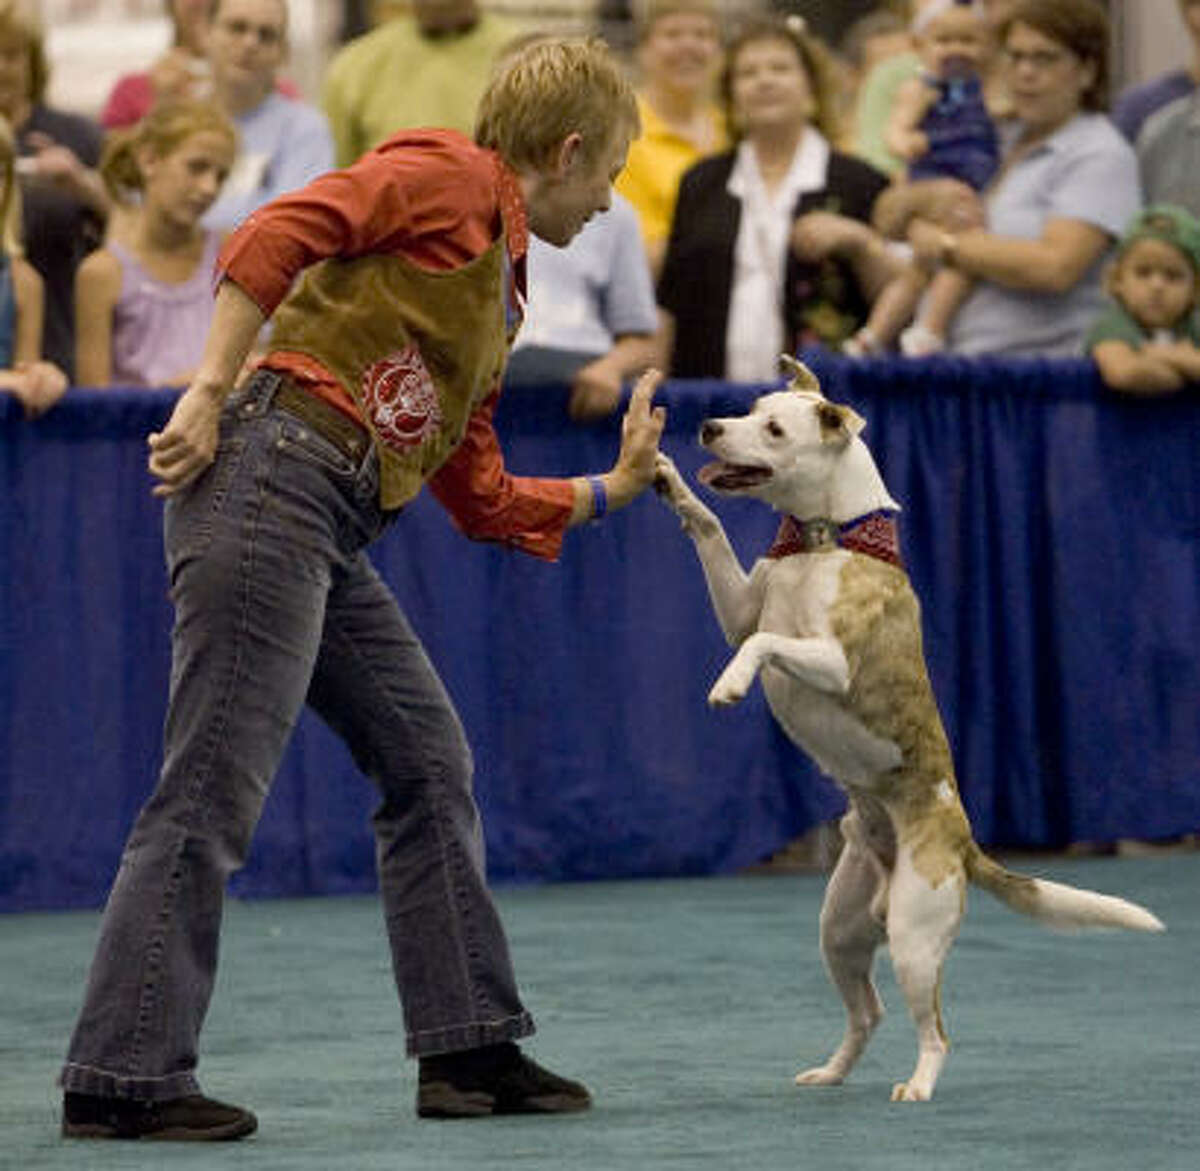 C. Cappel of Dallas, high-fives her dog, Shrek the Ogre Achiever, during a dance demonstration. What's your pup's talent? Share your dog pics.